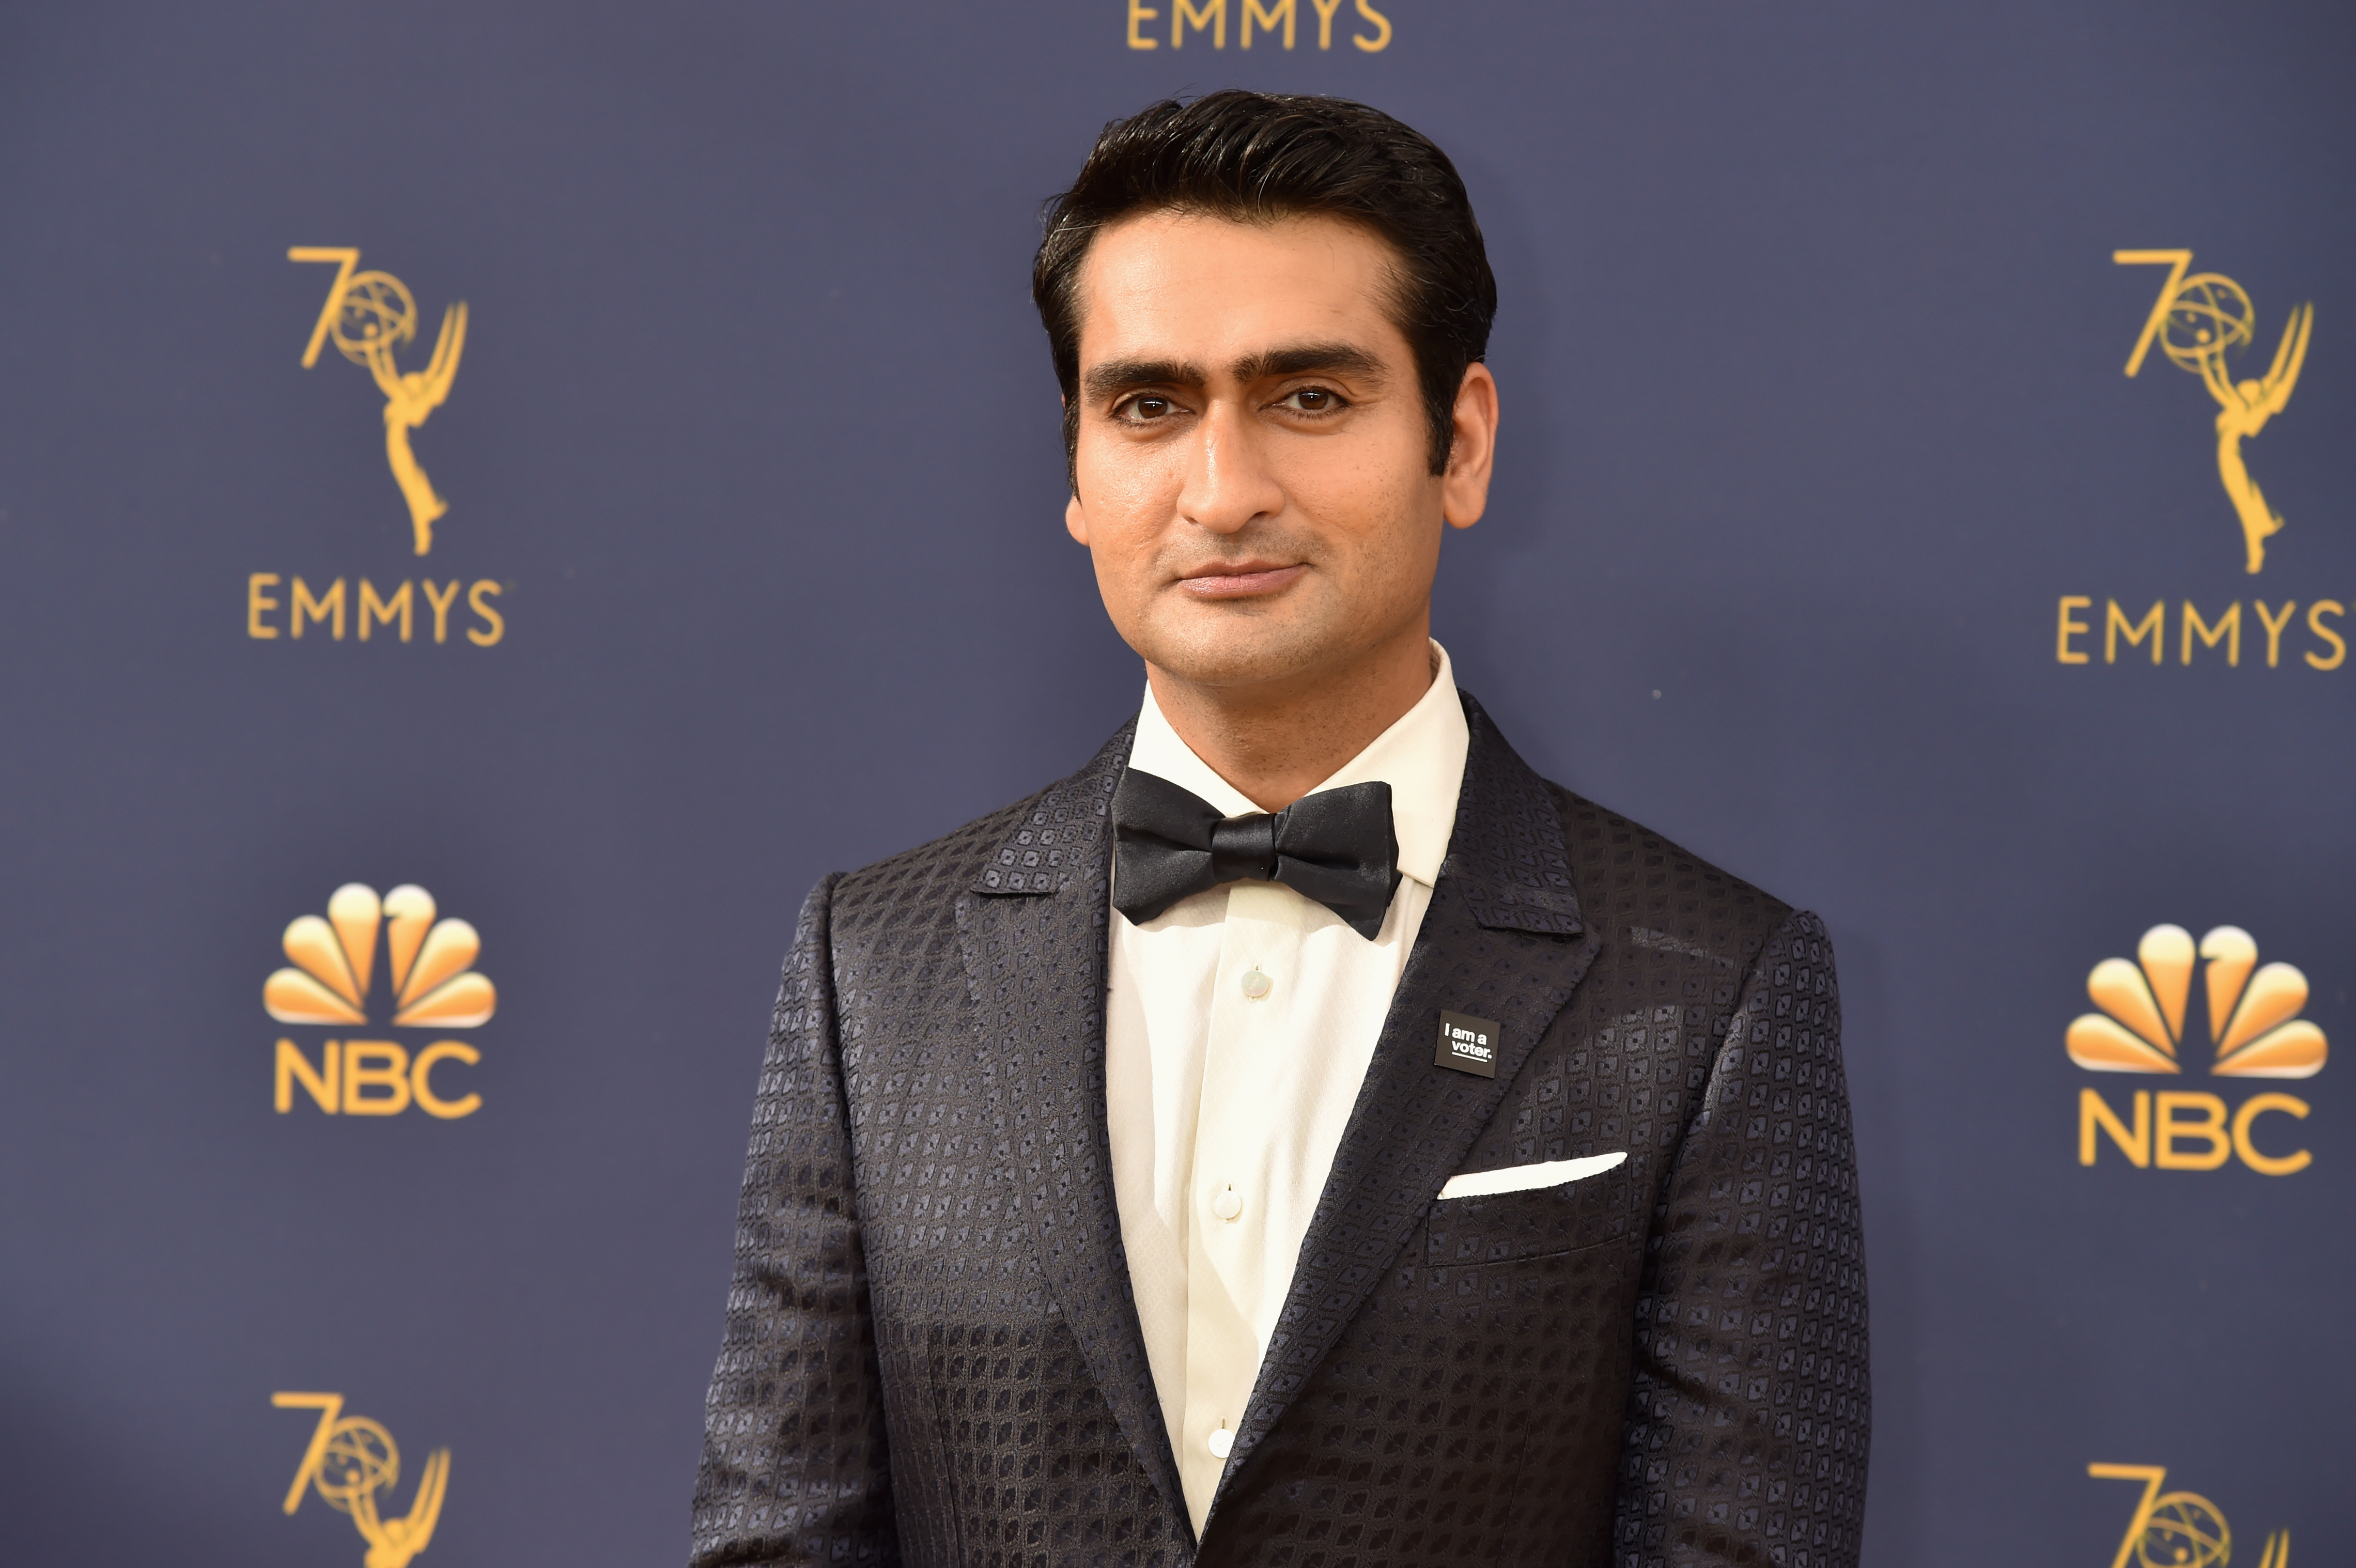 LOS ANGELES, CA - SEPTEMBER 17:  Kumail Nanjiani attends the 70th Emmy Awards at Microsoft Theater on September 17, 2018 in Los Angeles, California.  (Photo by Jeff Kravitz/FilmMagic)